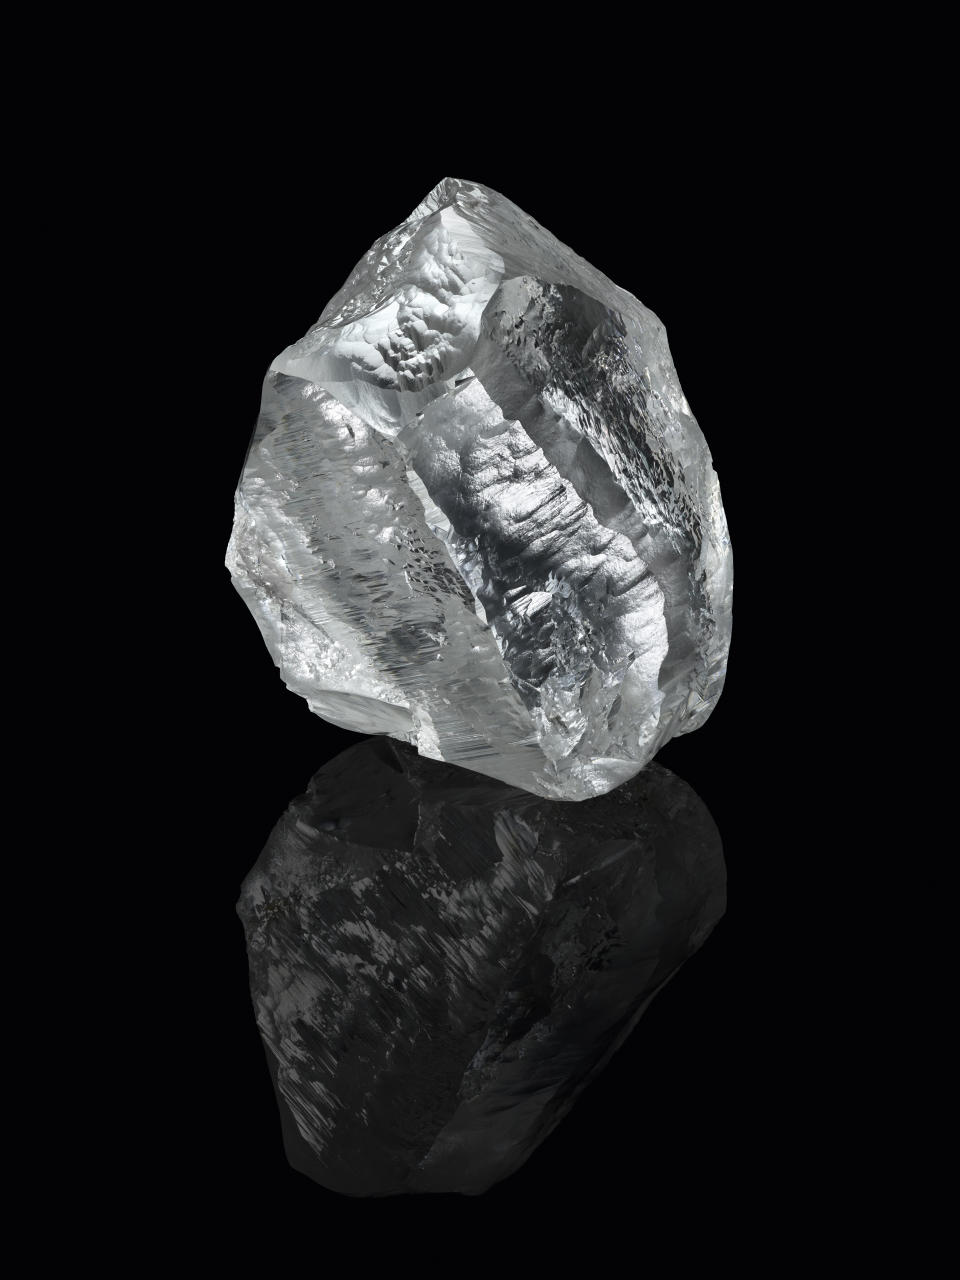 The Sethunya diamond. (PHOTO: Louis Vuitton)